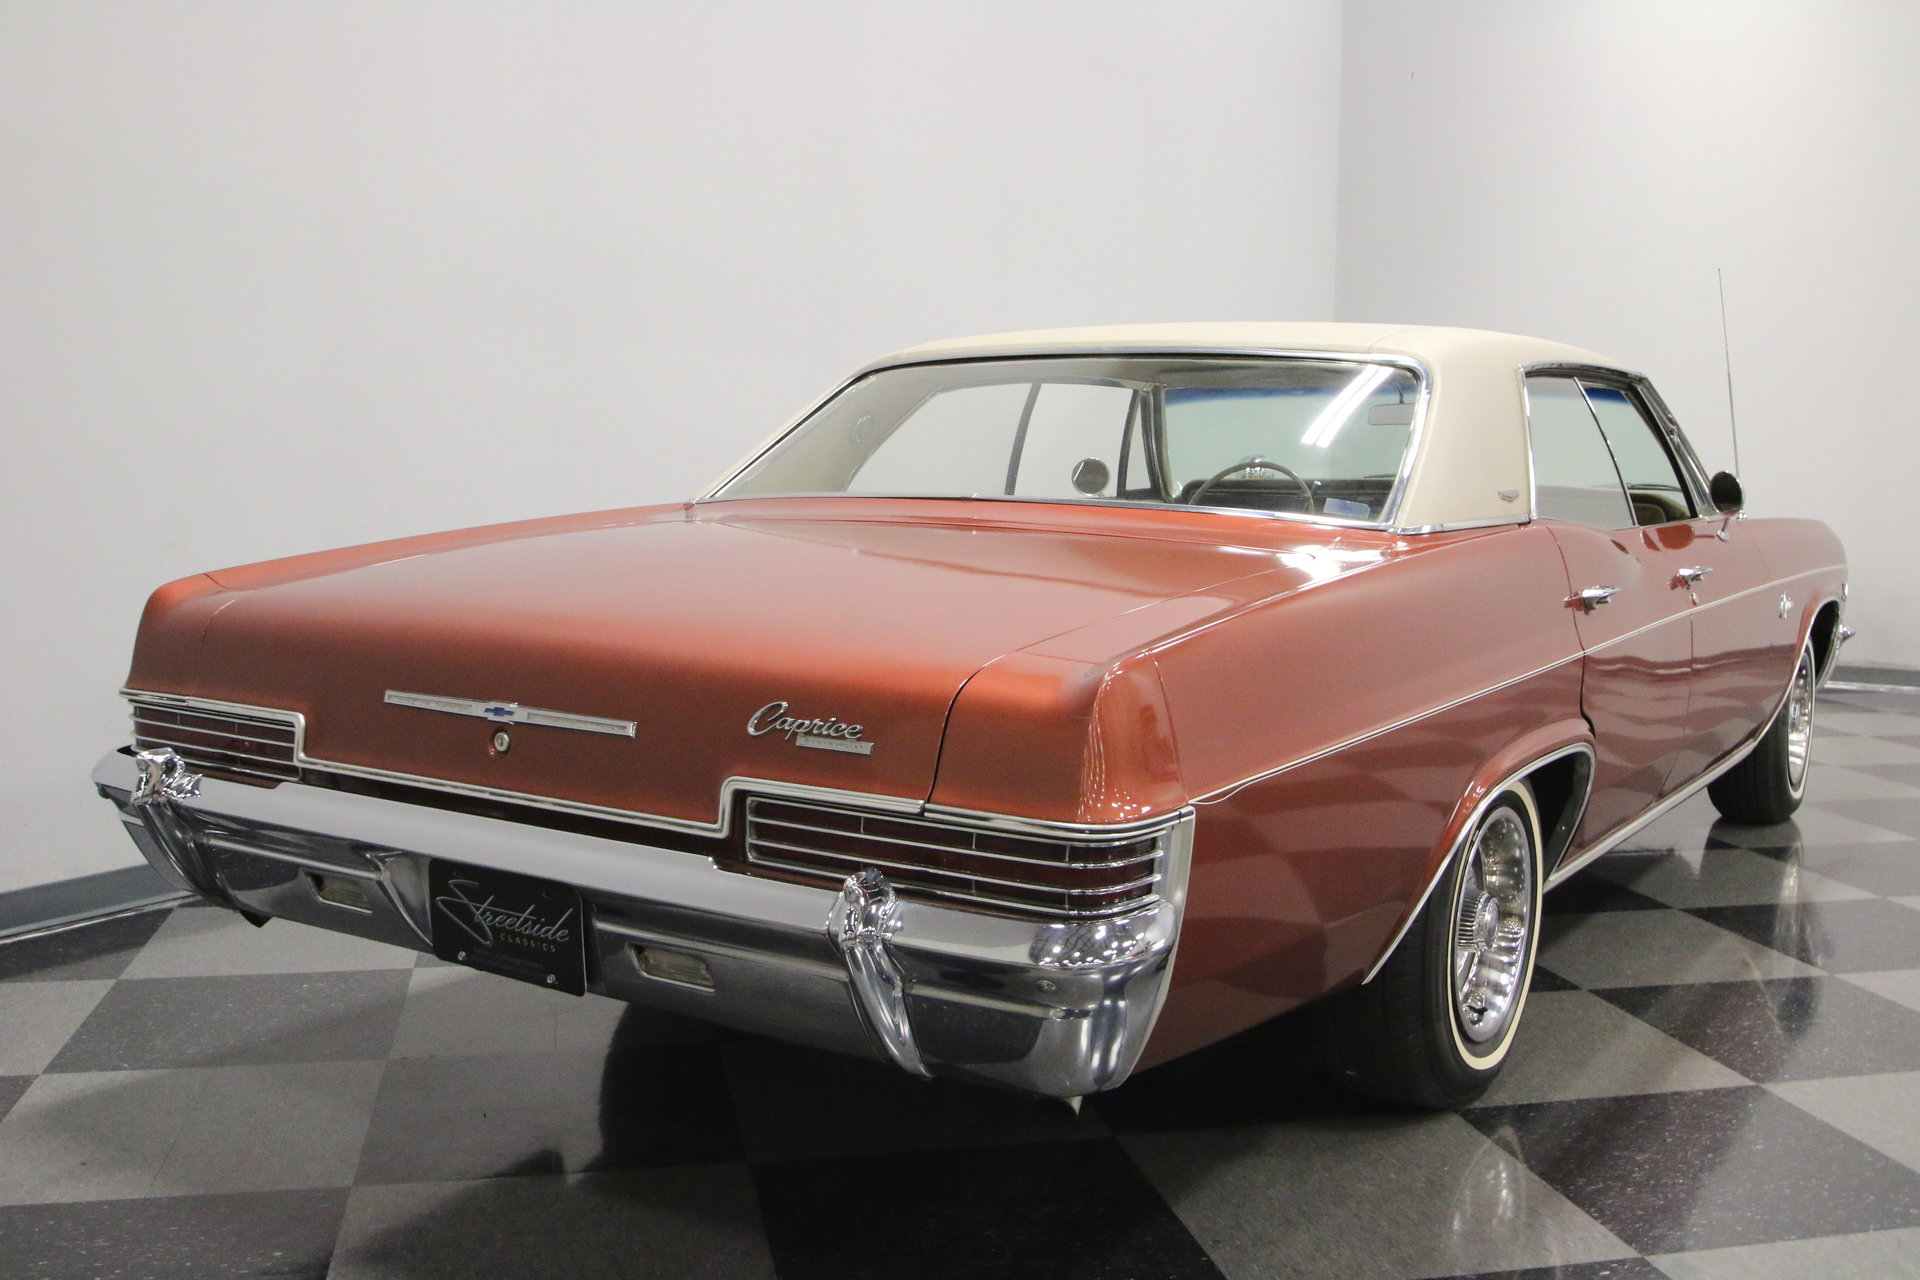 1966 Chevrolet Caprice Streetside Classics The Nations Trusted Chevy Wagon View 360